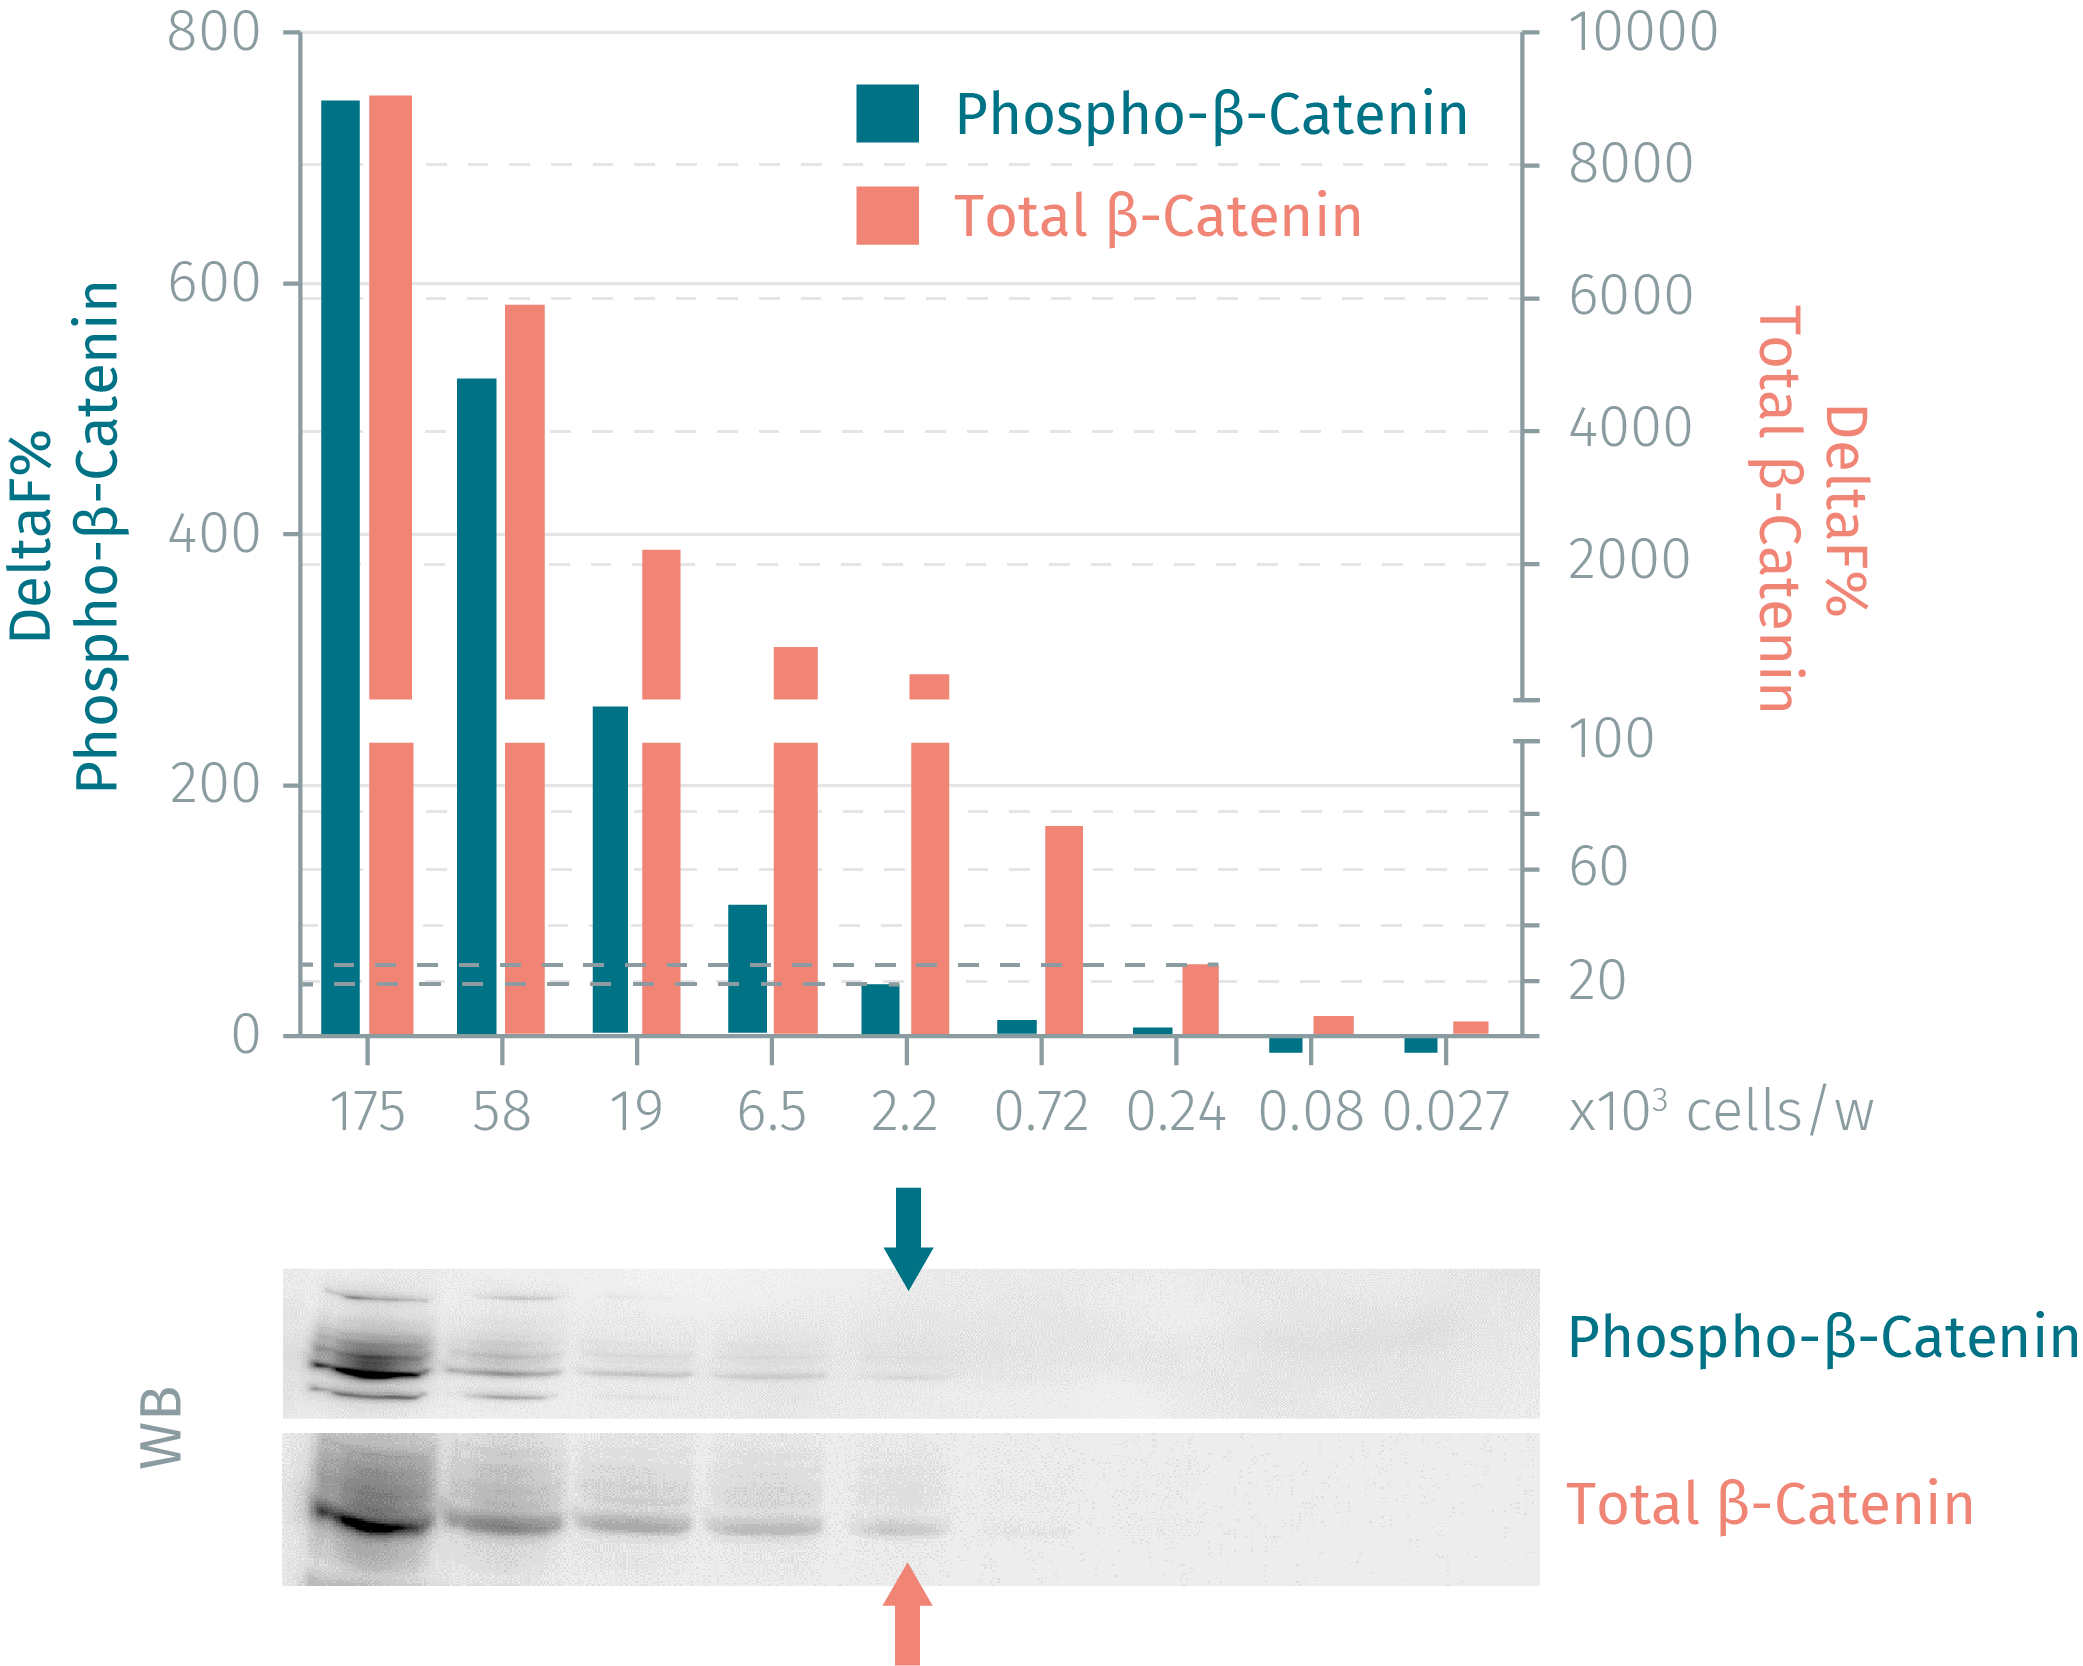 HTRFvesus Western blot using thephospho and total ß-Catenin assays